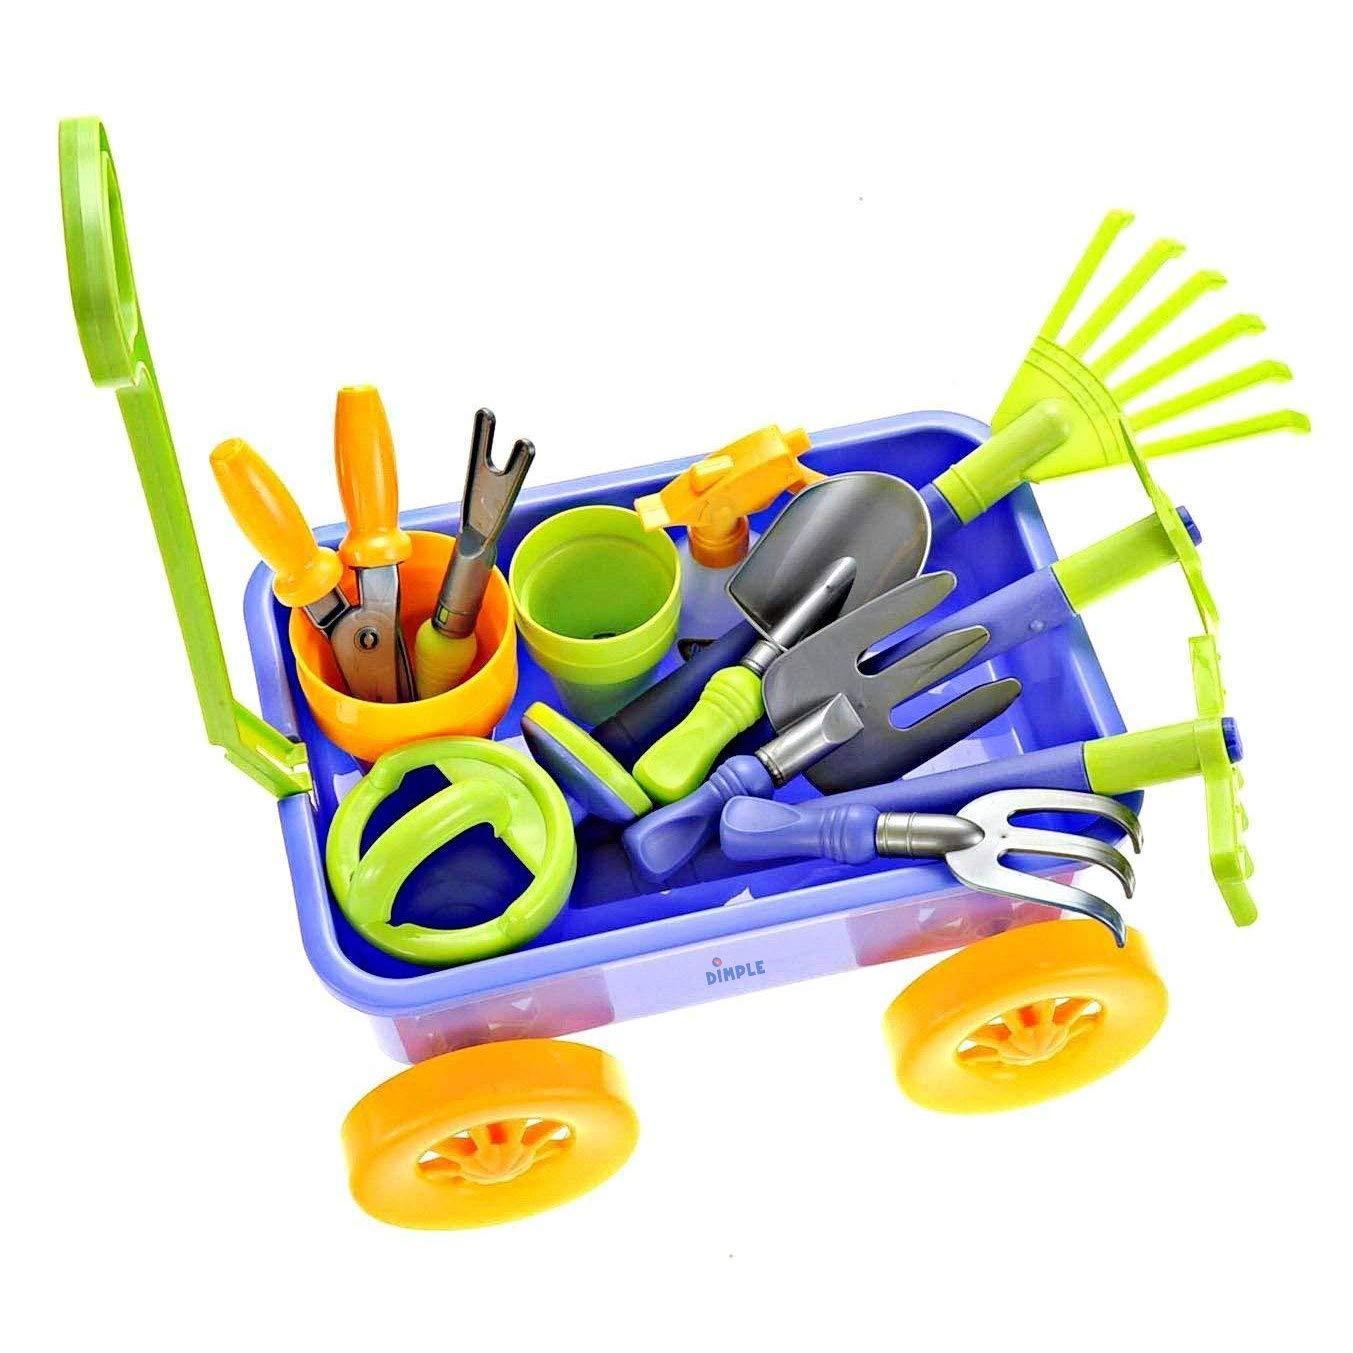 Dimple DCN12752 Garden Wagon and Tools Toy Set Premium 15Piece Gardening Tools and Wagon Toy Set Sturdy and Durable-Top Yd, Beach, Sand, Garden Toy-Great for Kids and Toddlers, Multicolor